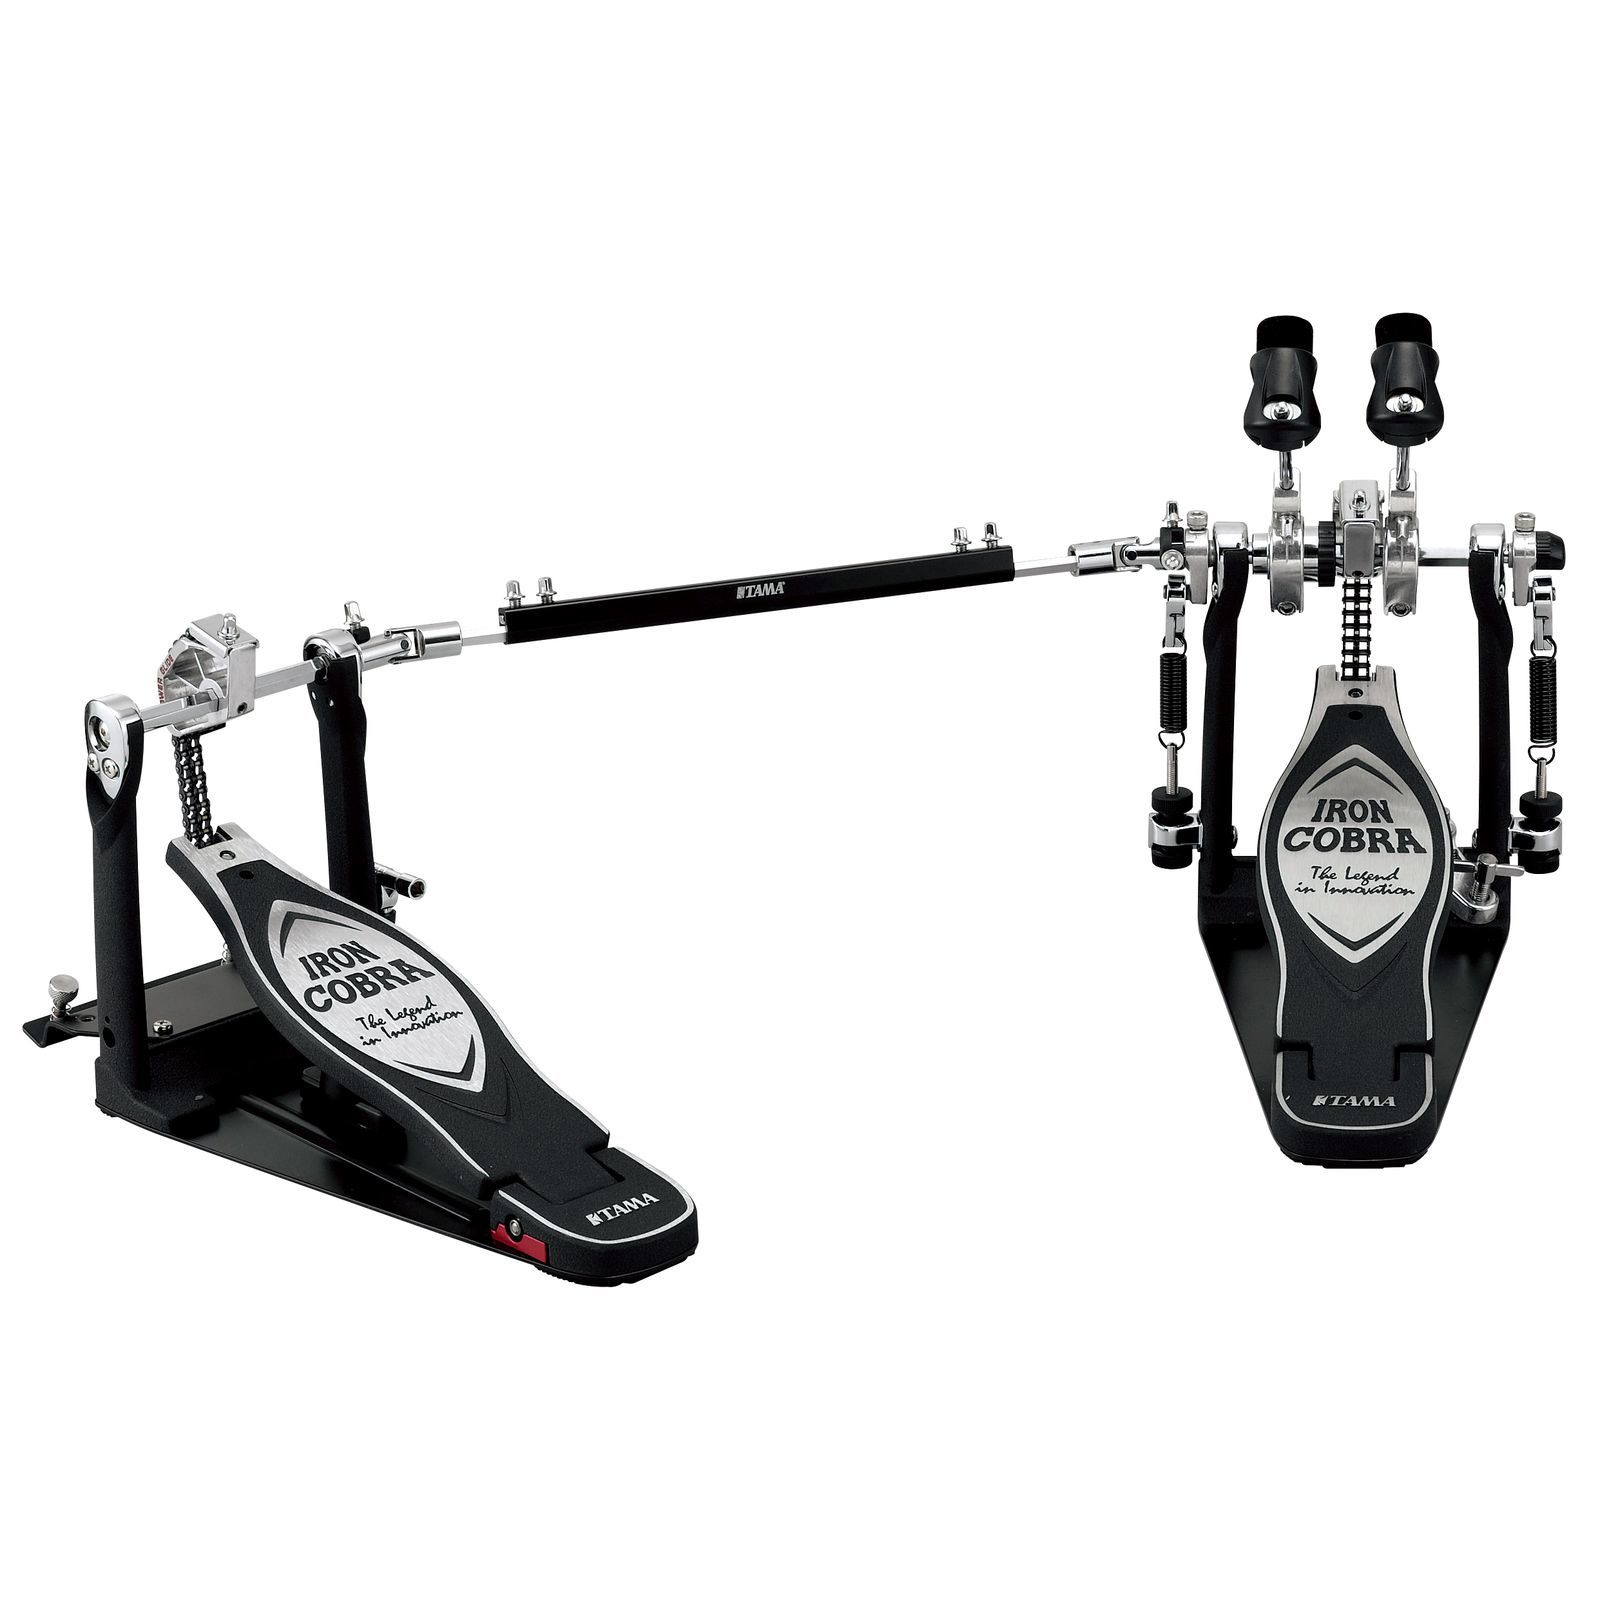 Tama Doppelpedal Iron Cobra, HP900PWN, Power Glide Product Image